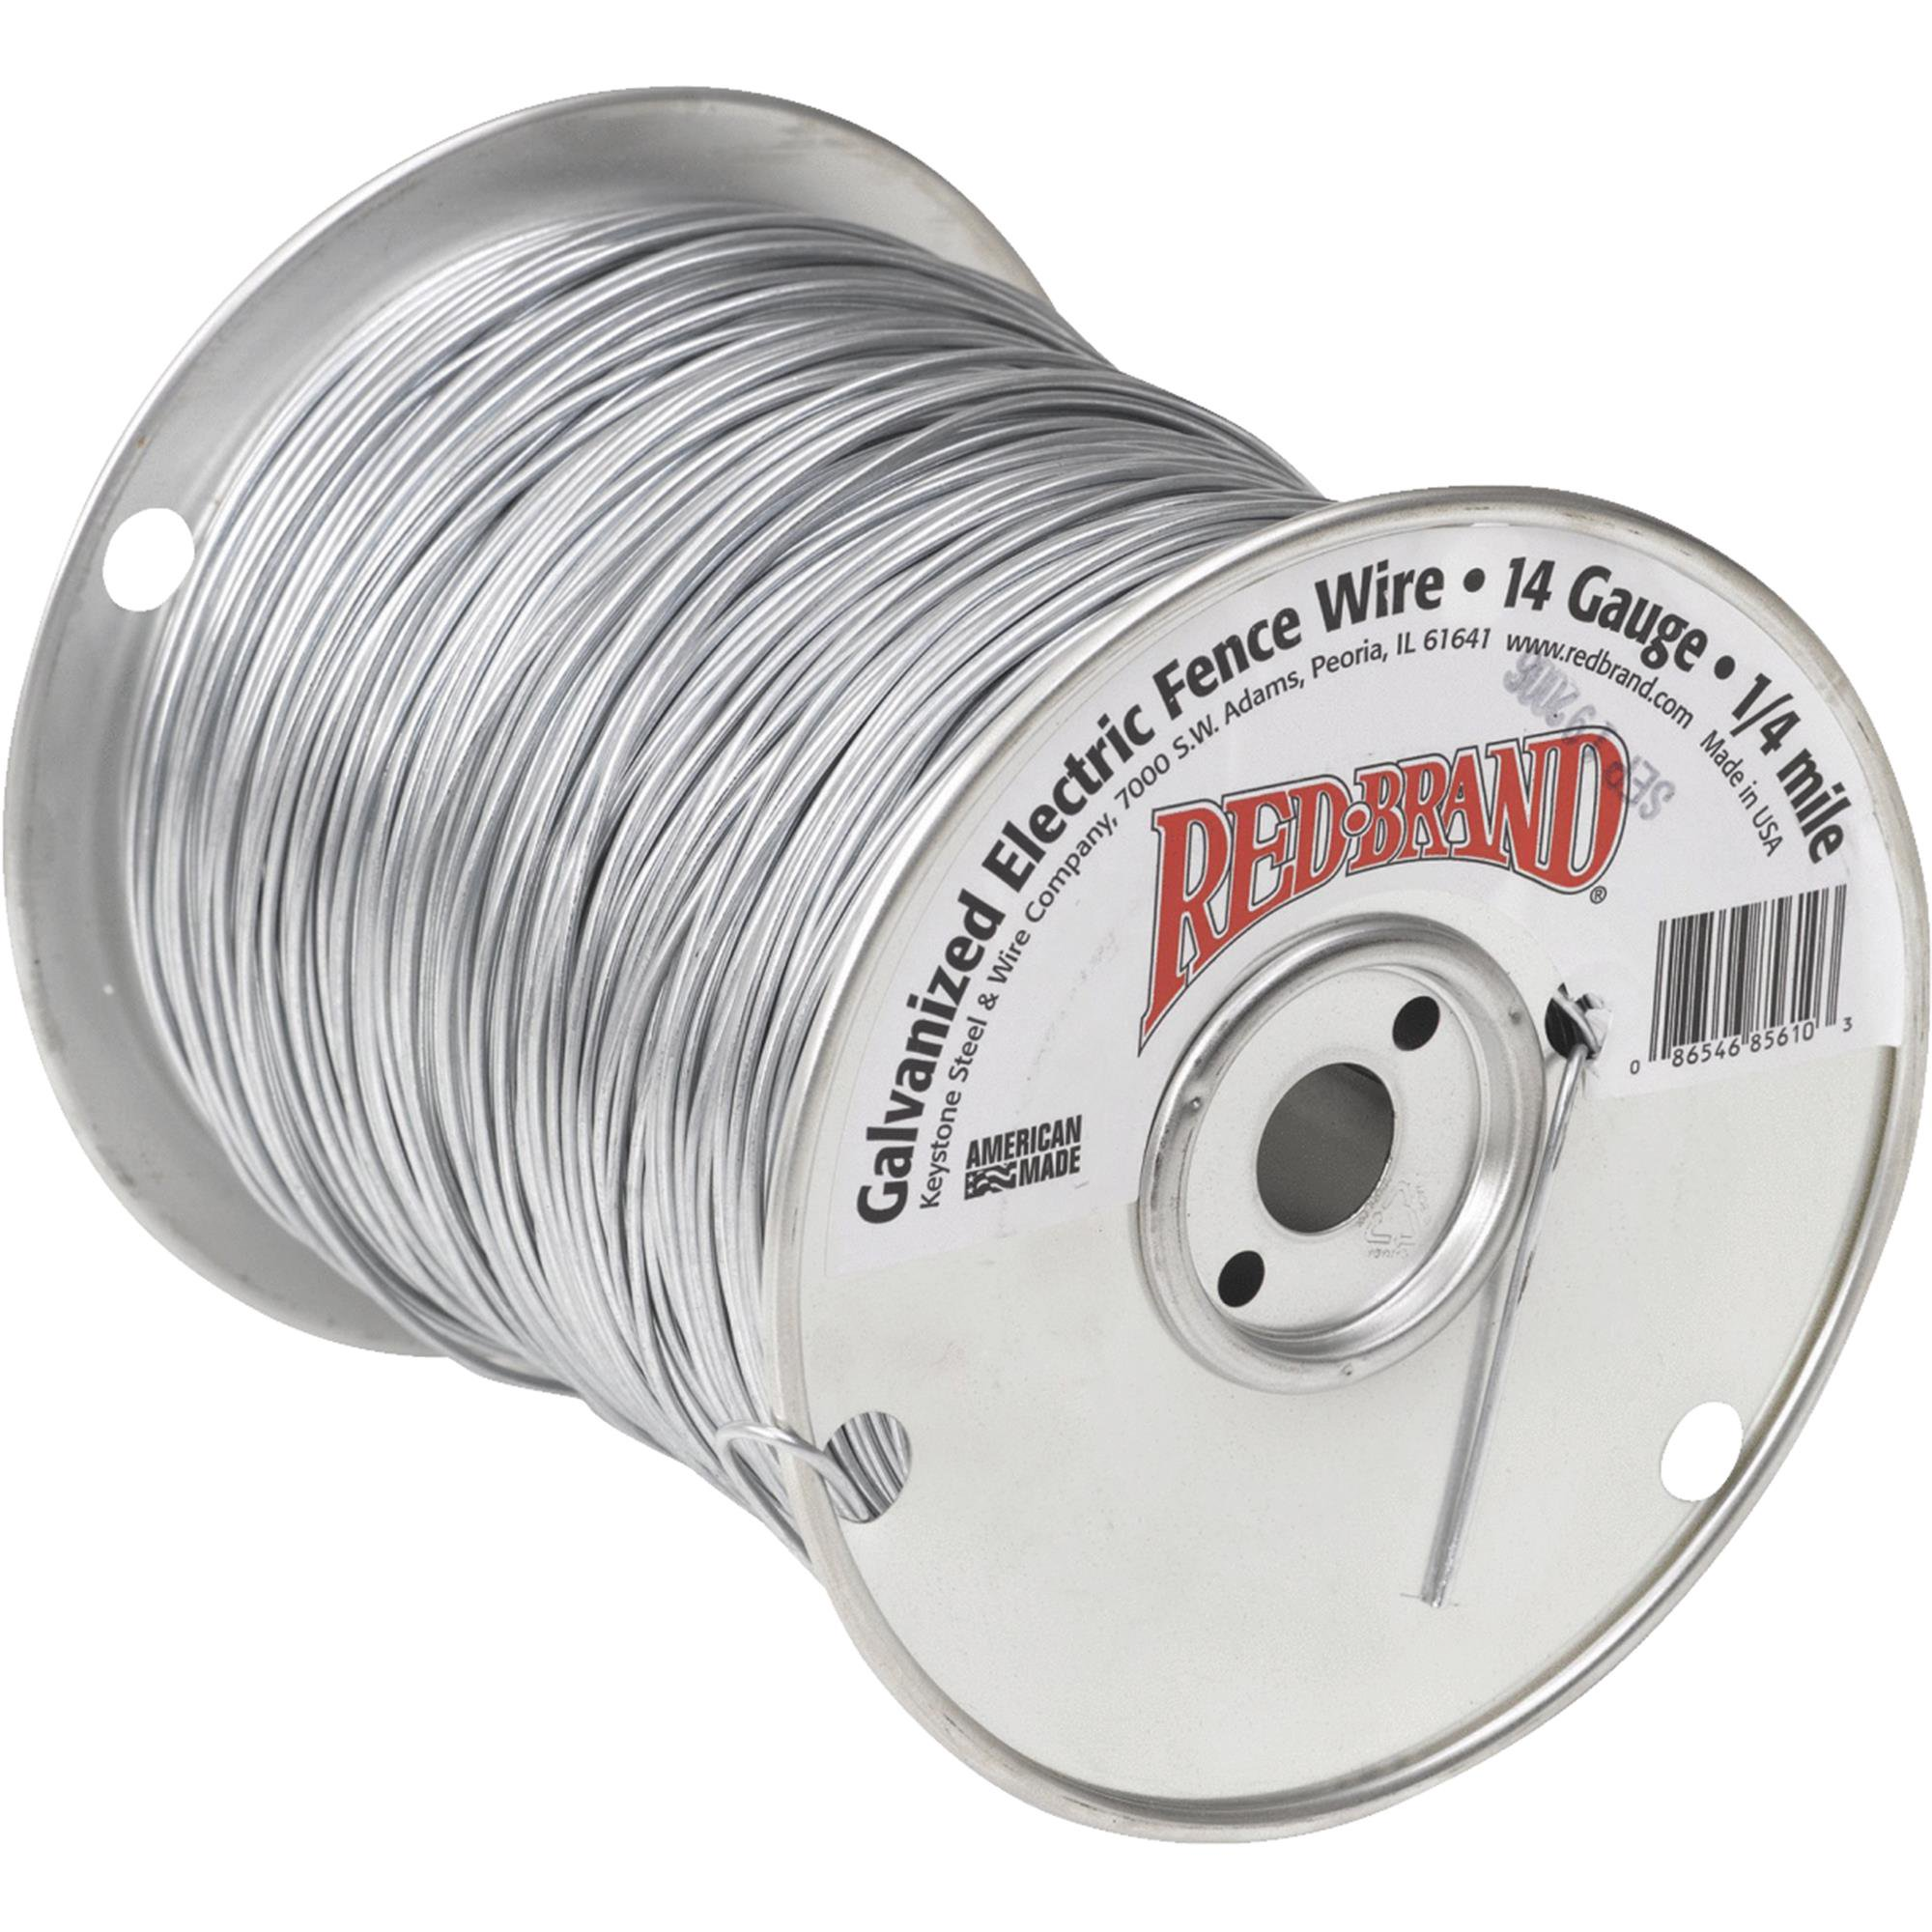 Keystone Red Brand Electric Fence Wire by Keystone Steel & Wire